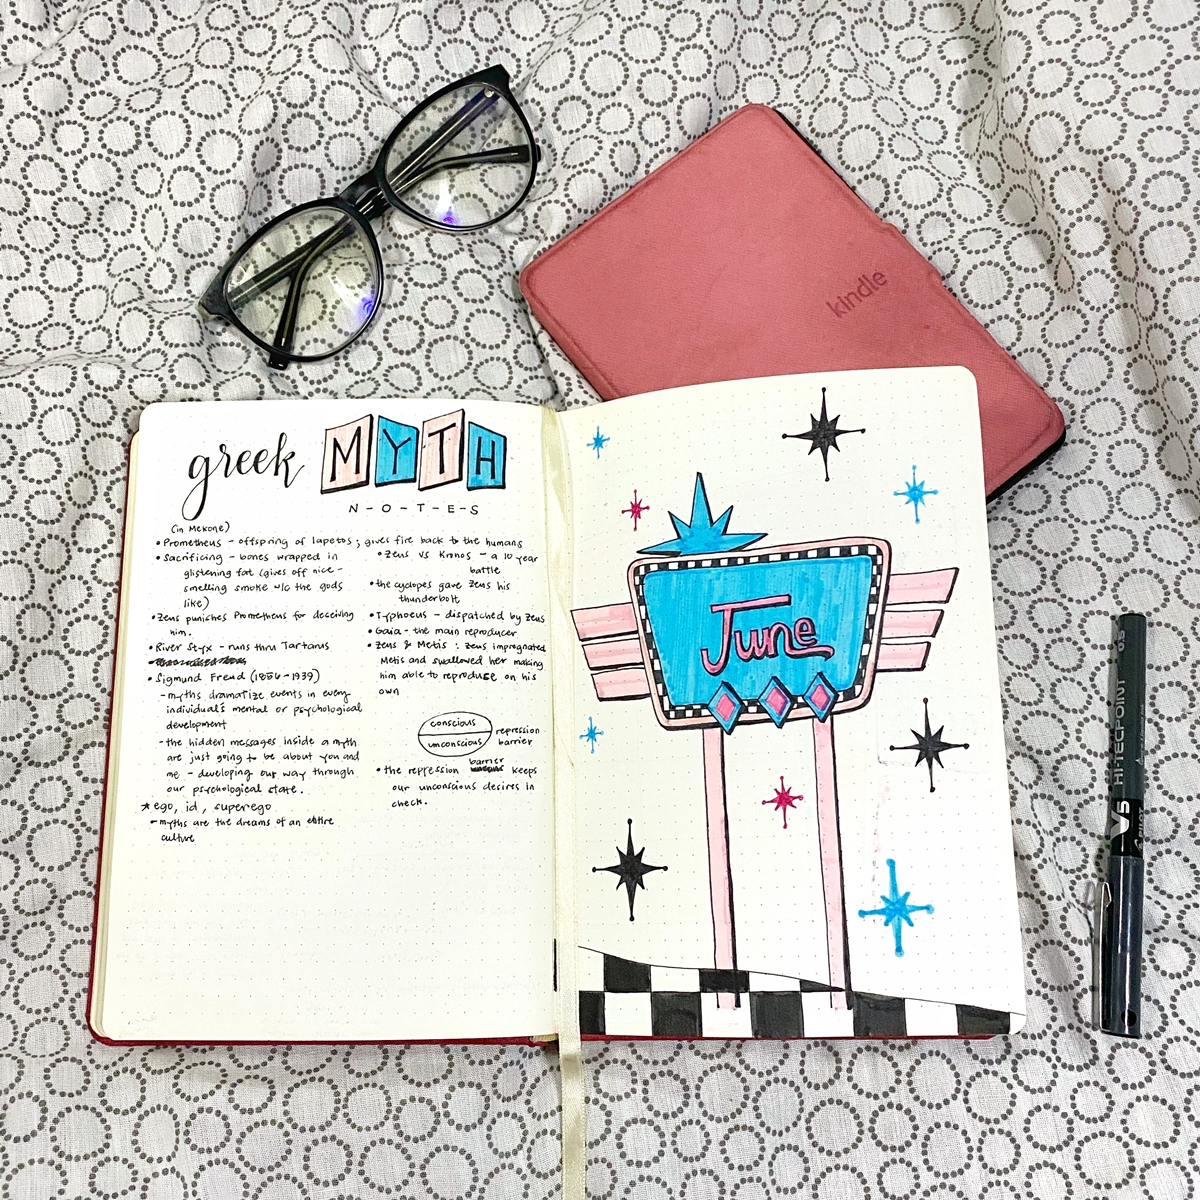 Renee Alexis - June 2020 Journal Spread